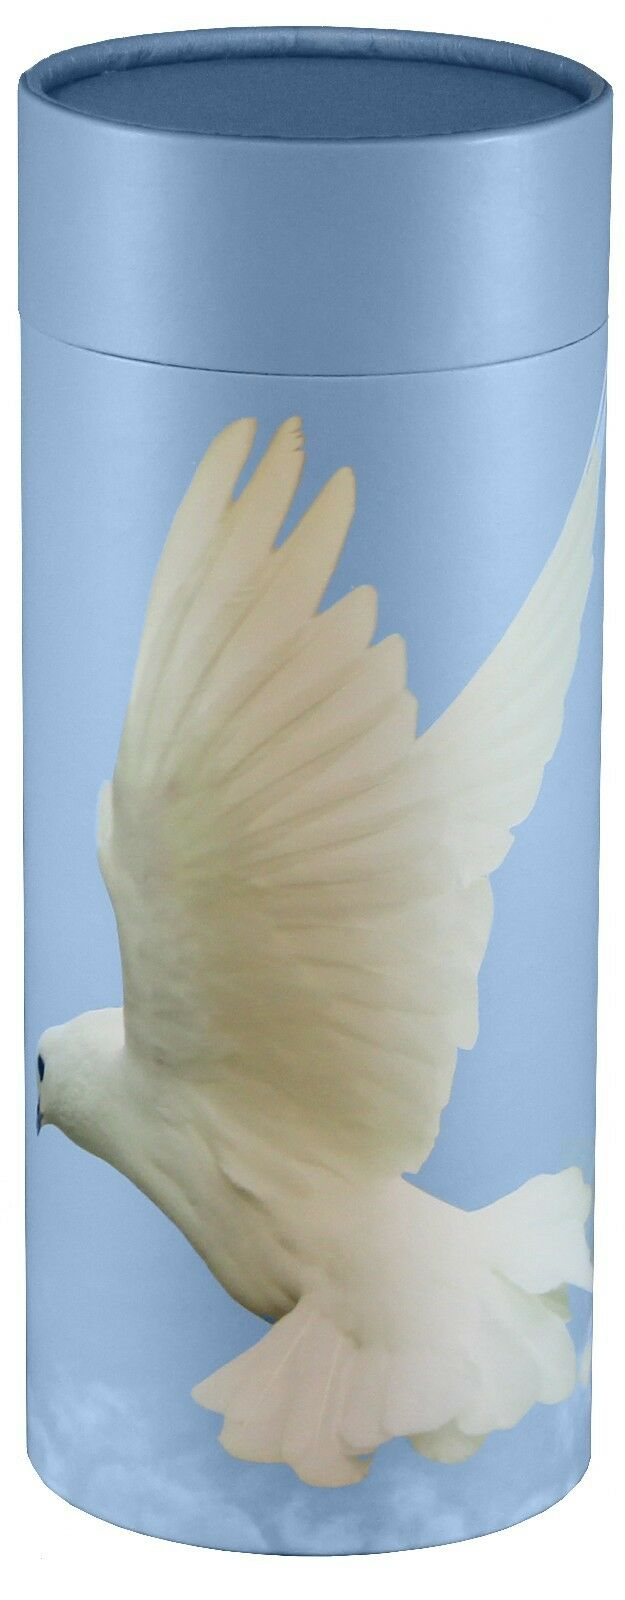 Biodegradable Ash Scattering Tube Funeral Cremation Urn - 240 cubic inches